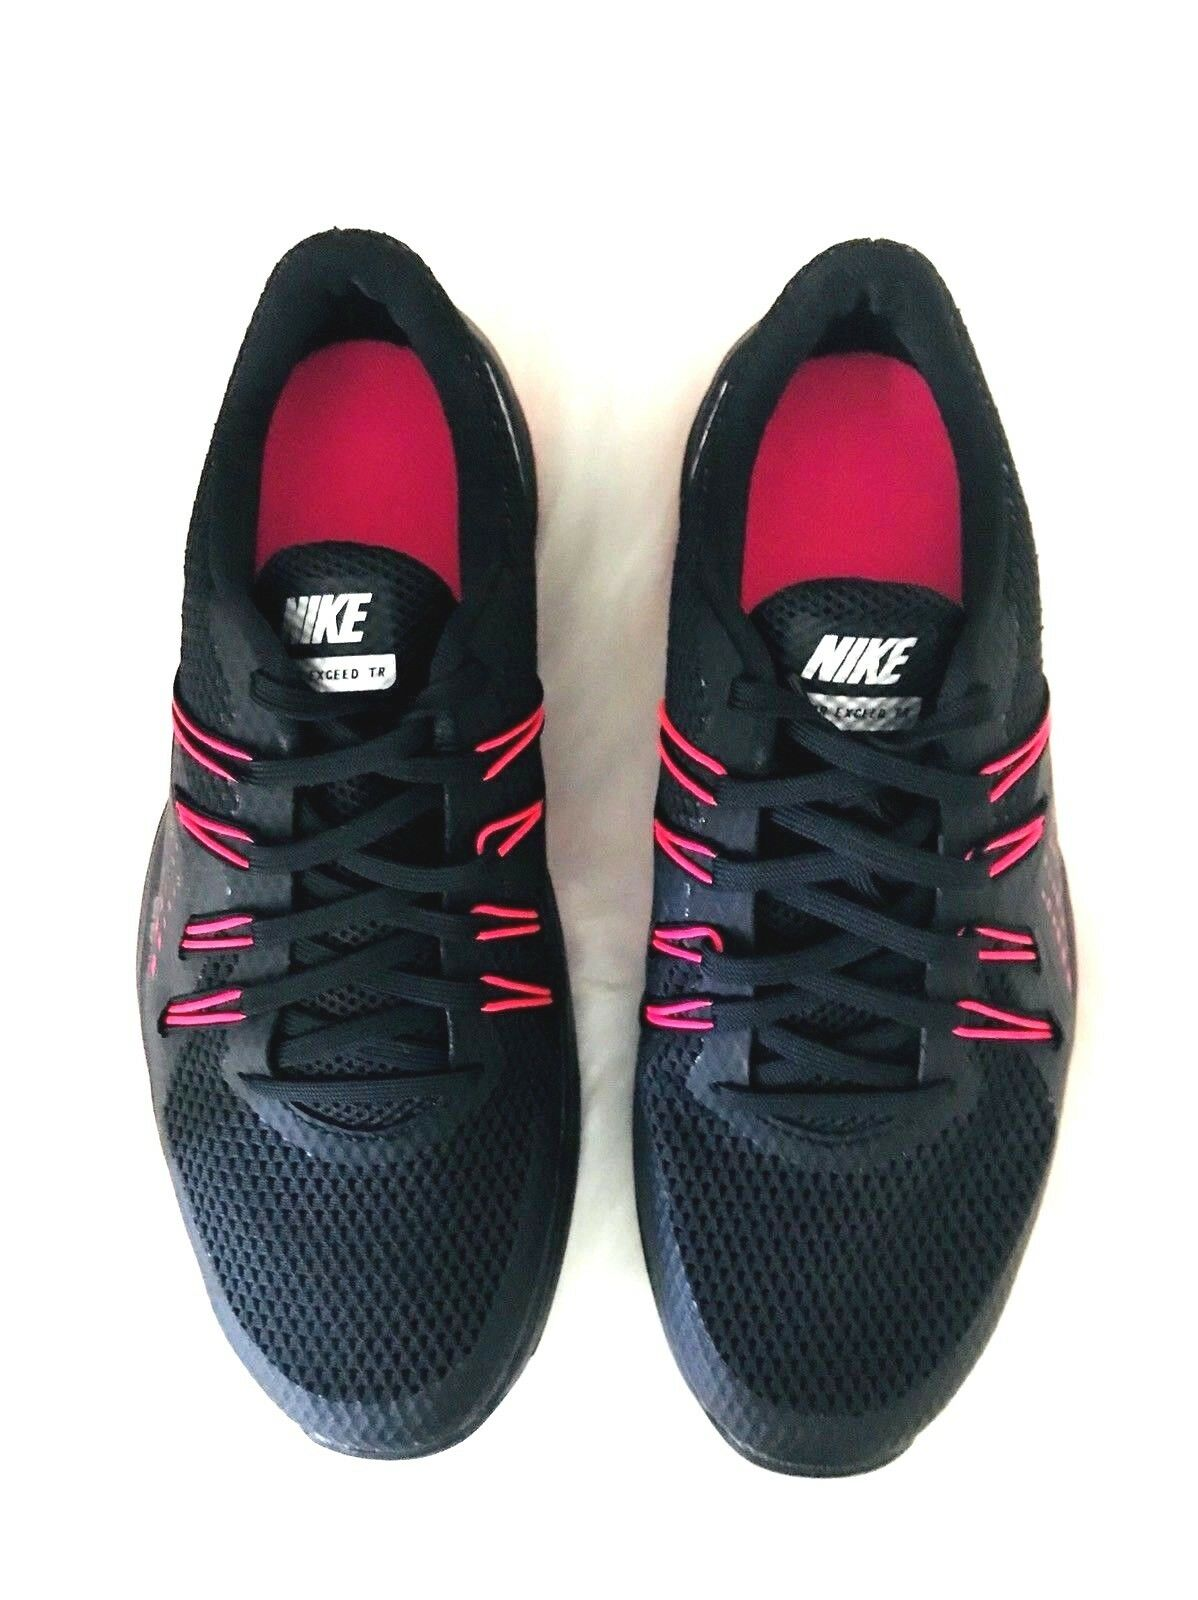 Women's NIKE LUNAR EXCEED TR shoes, sneakers New RN 880840 006 Sz. 7